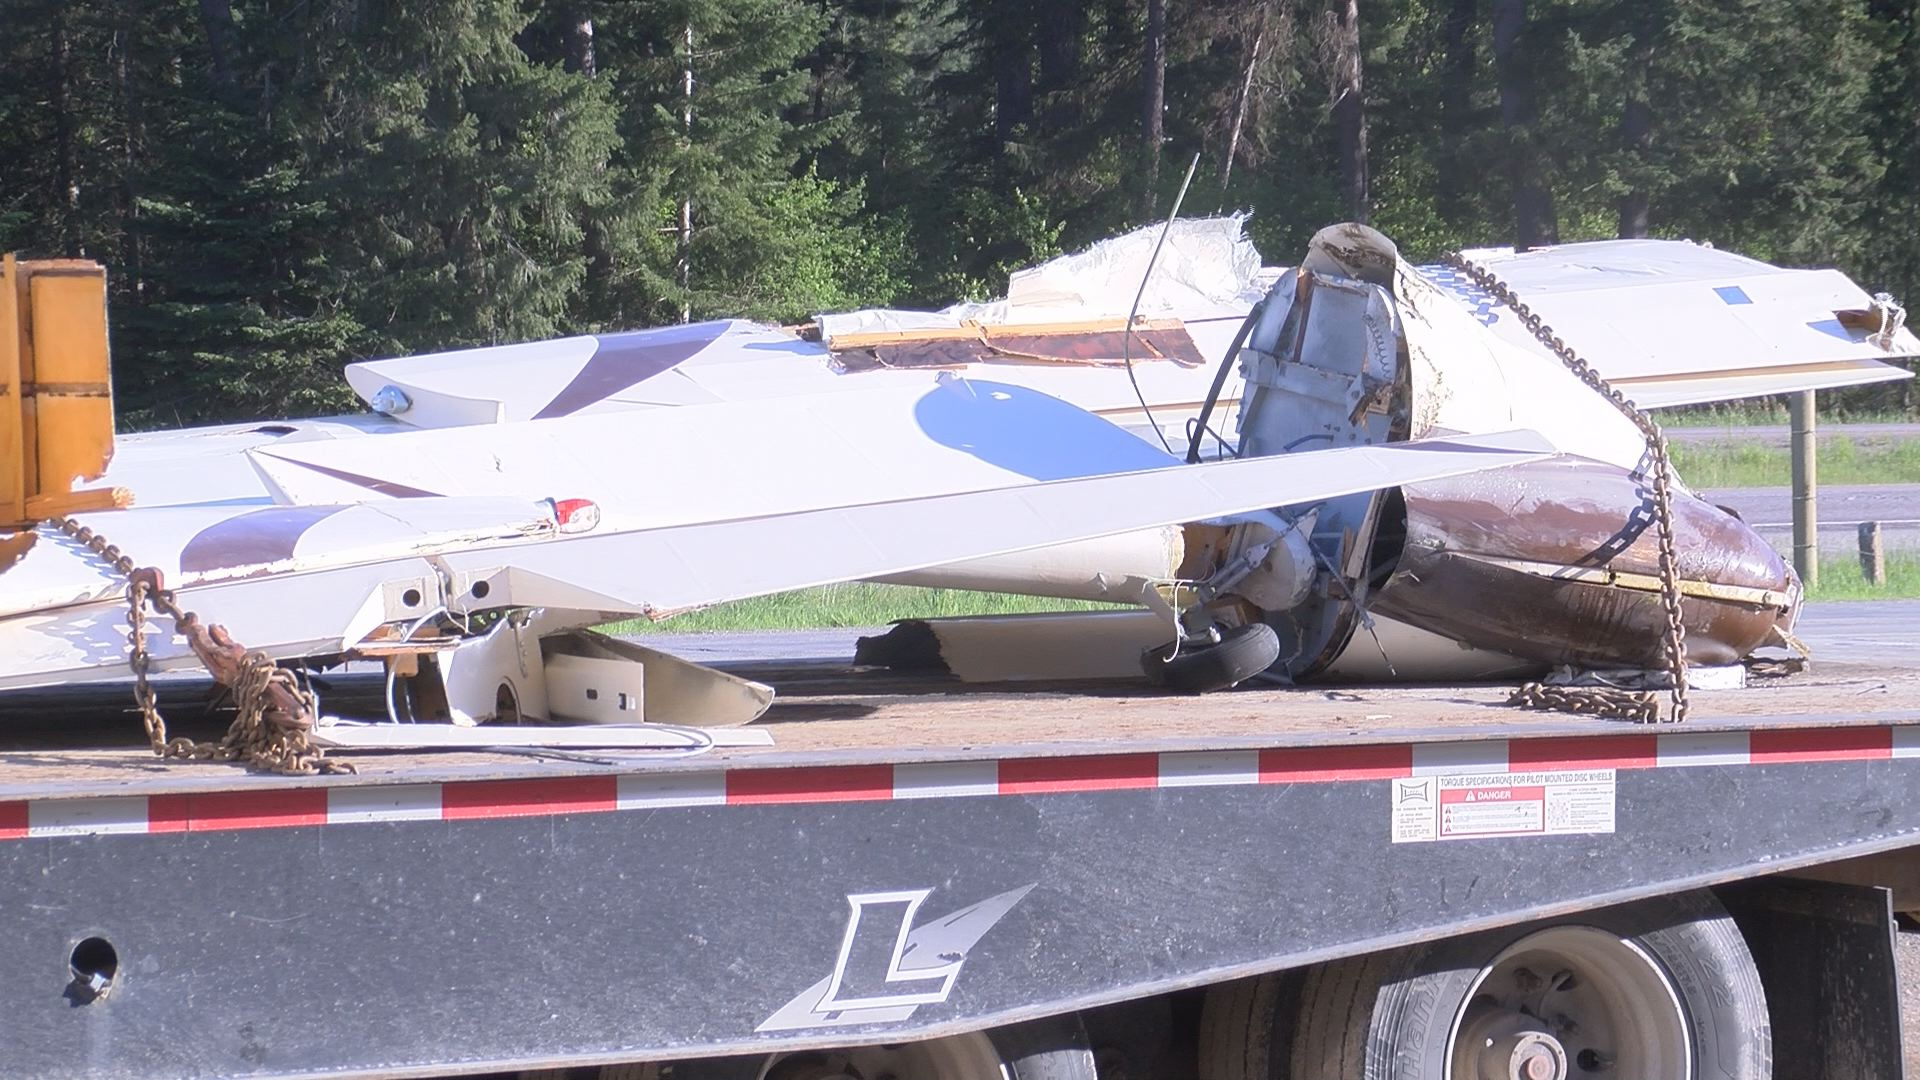 Remnants of the crashed plane on Interstate 90